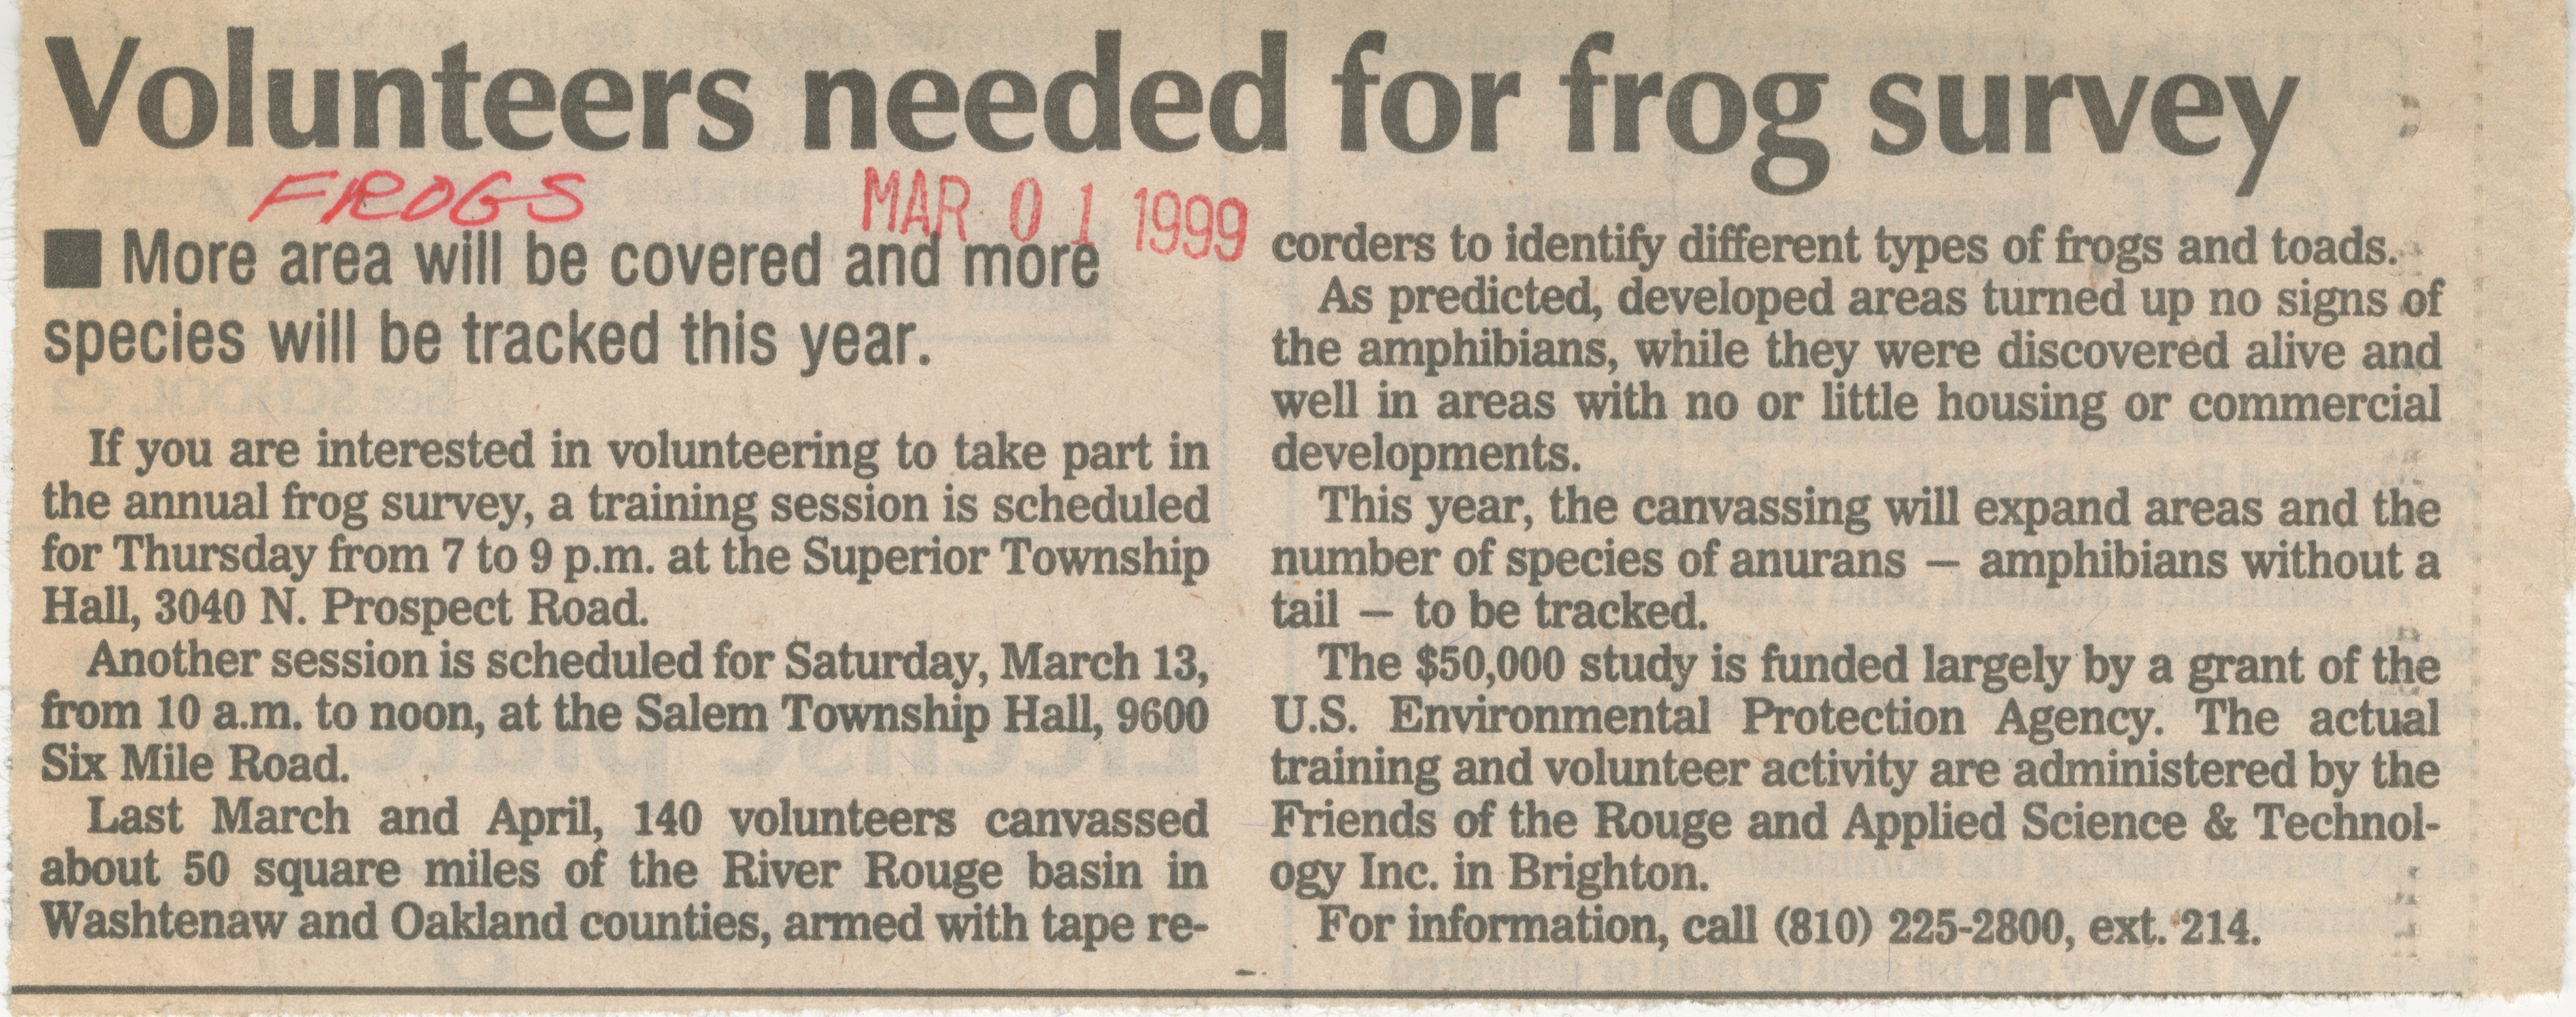 Volunteers Needed For Frog Survey image